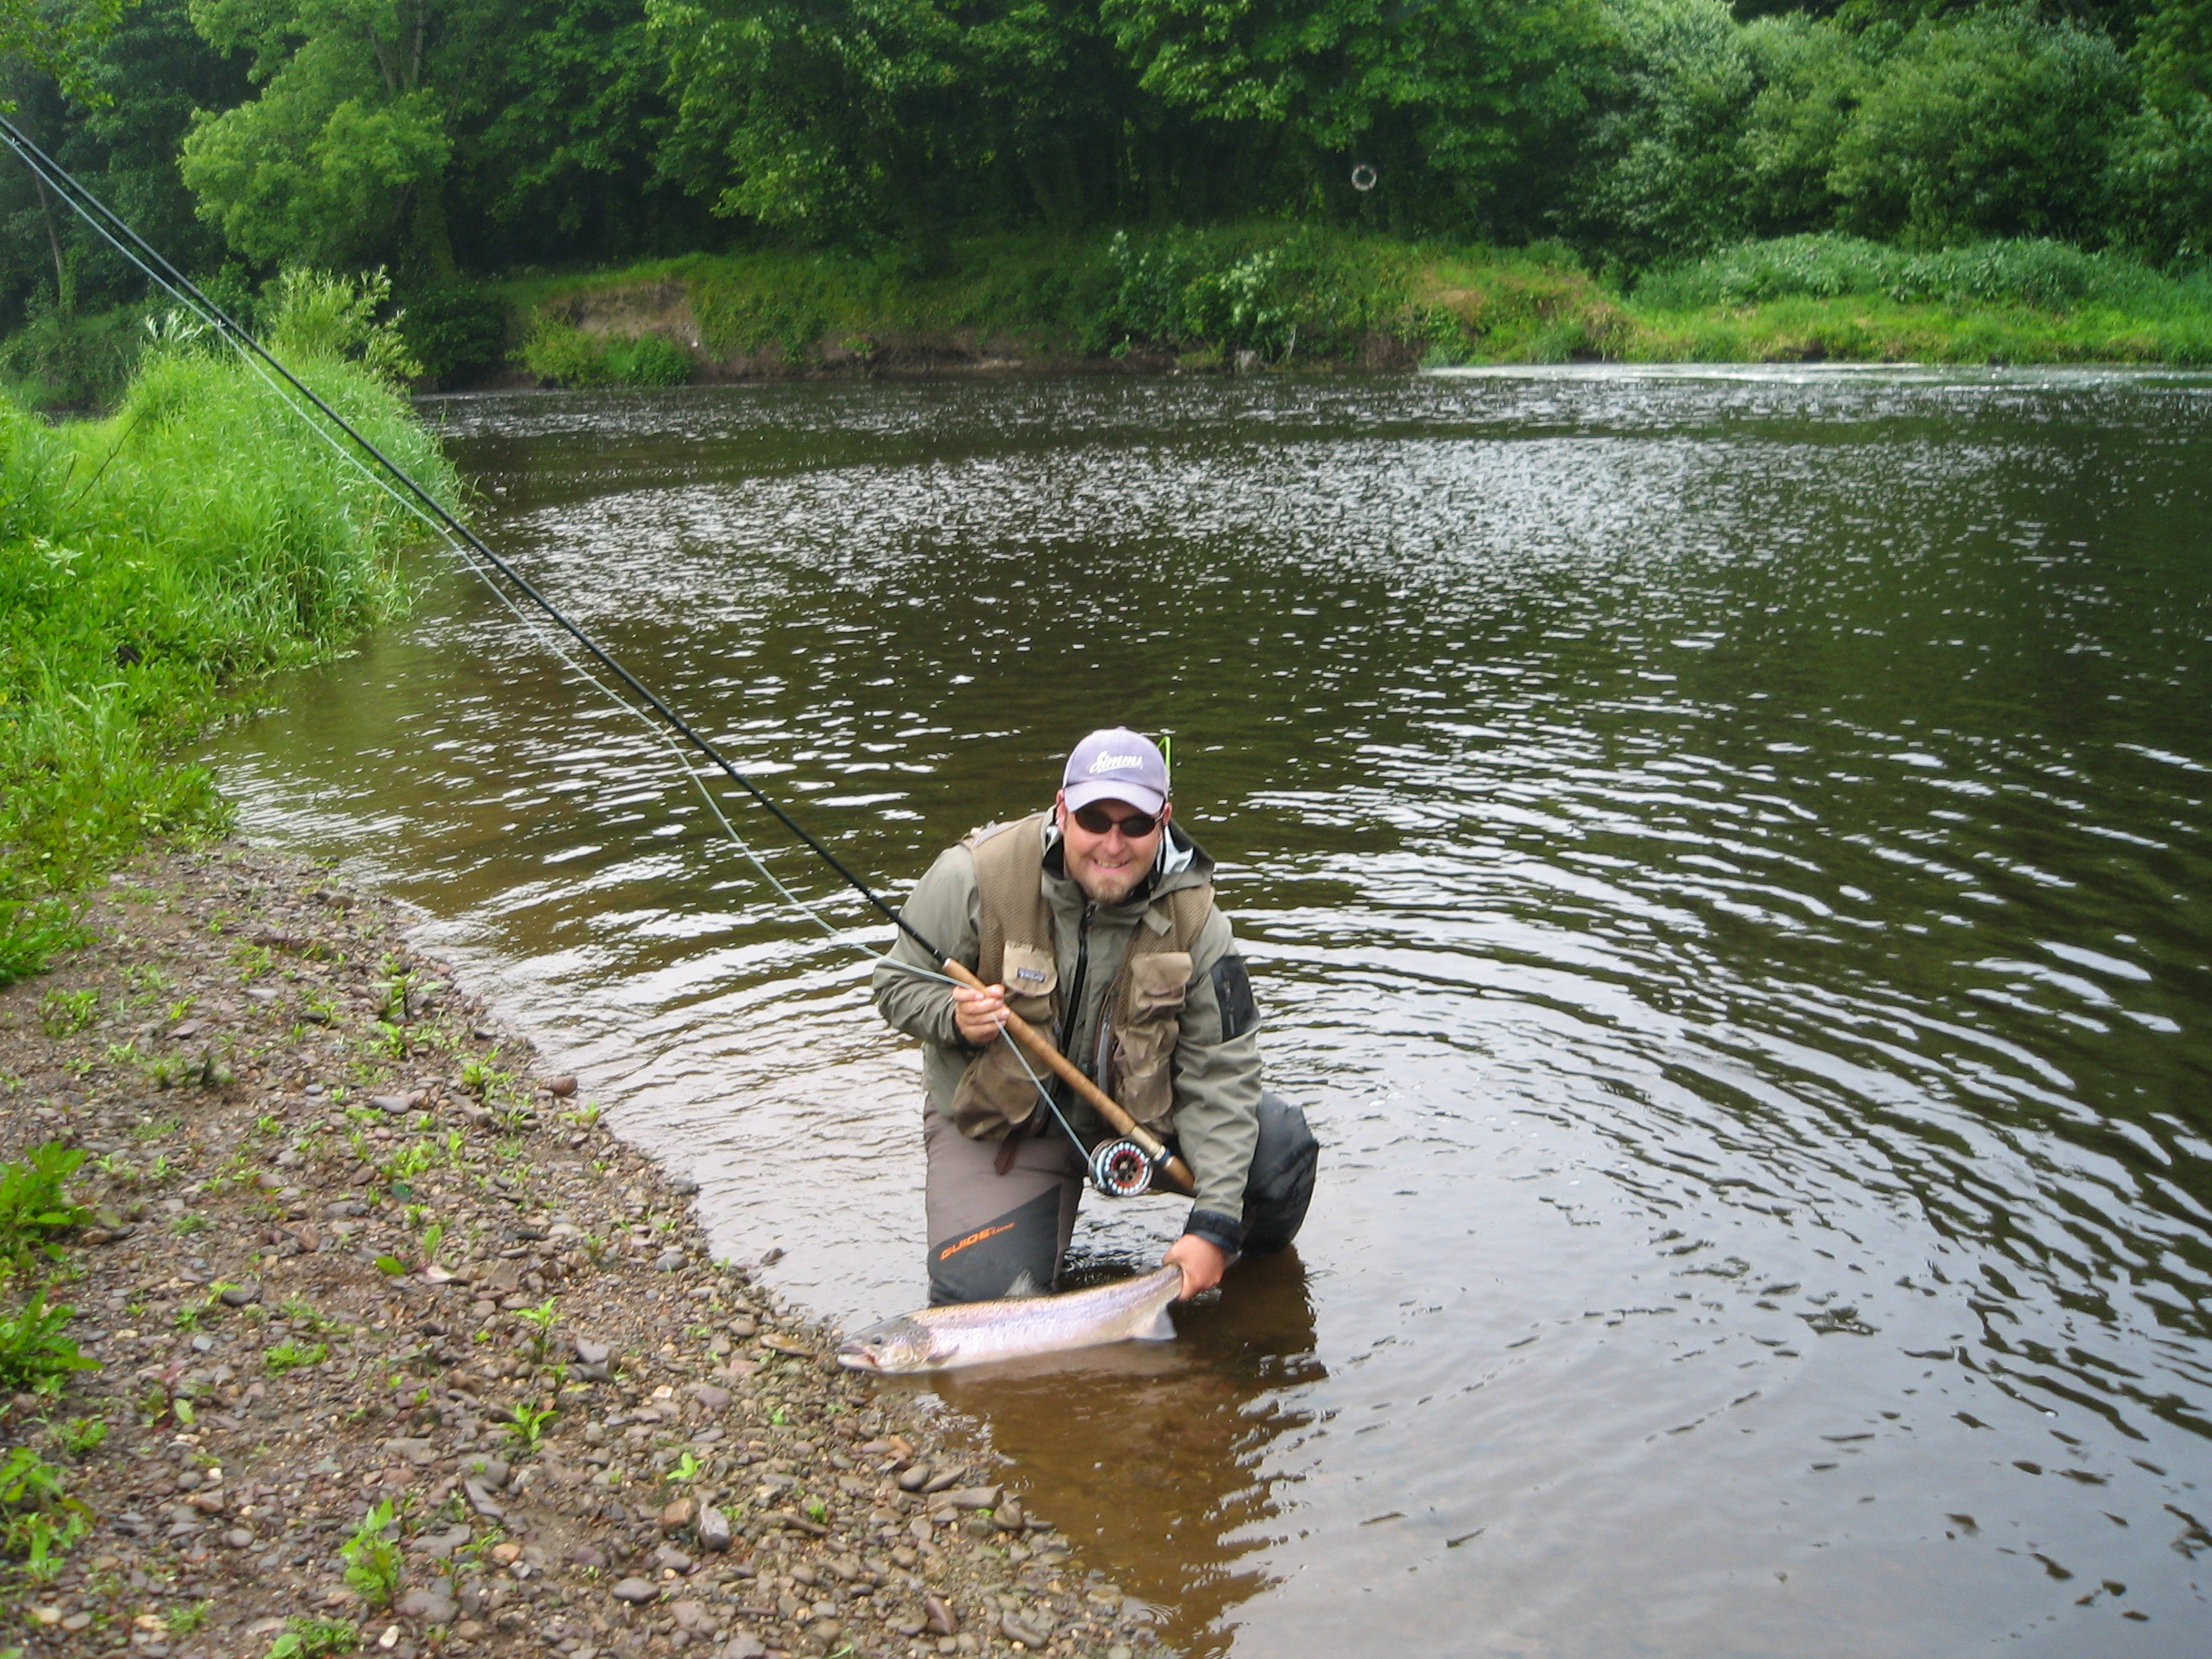 River drowes salmon fly fishing weekend course game for Fishing in ireland